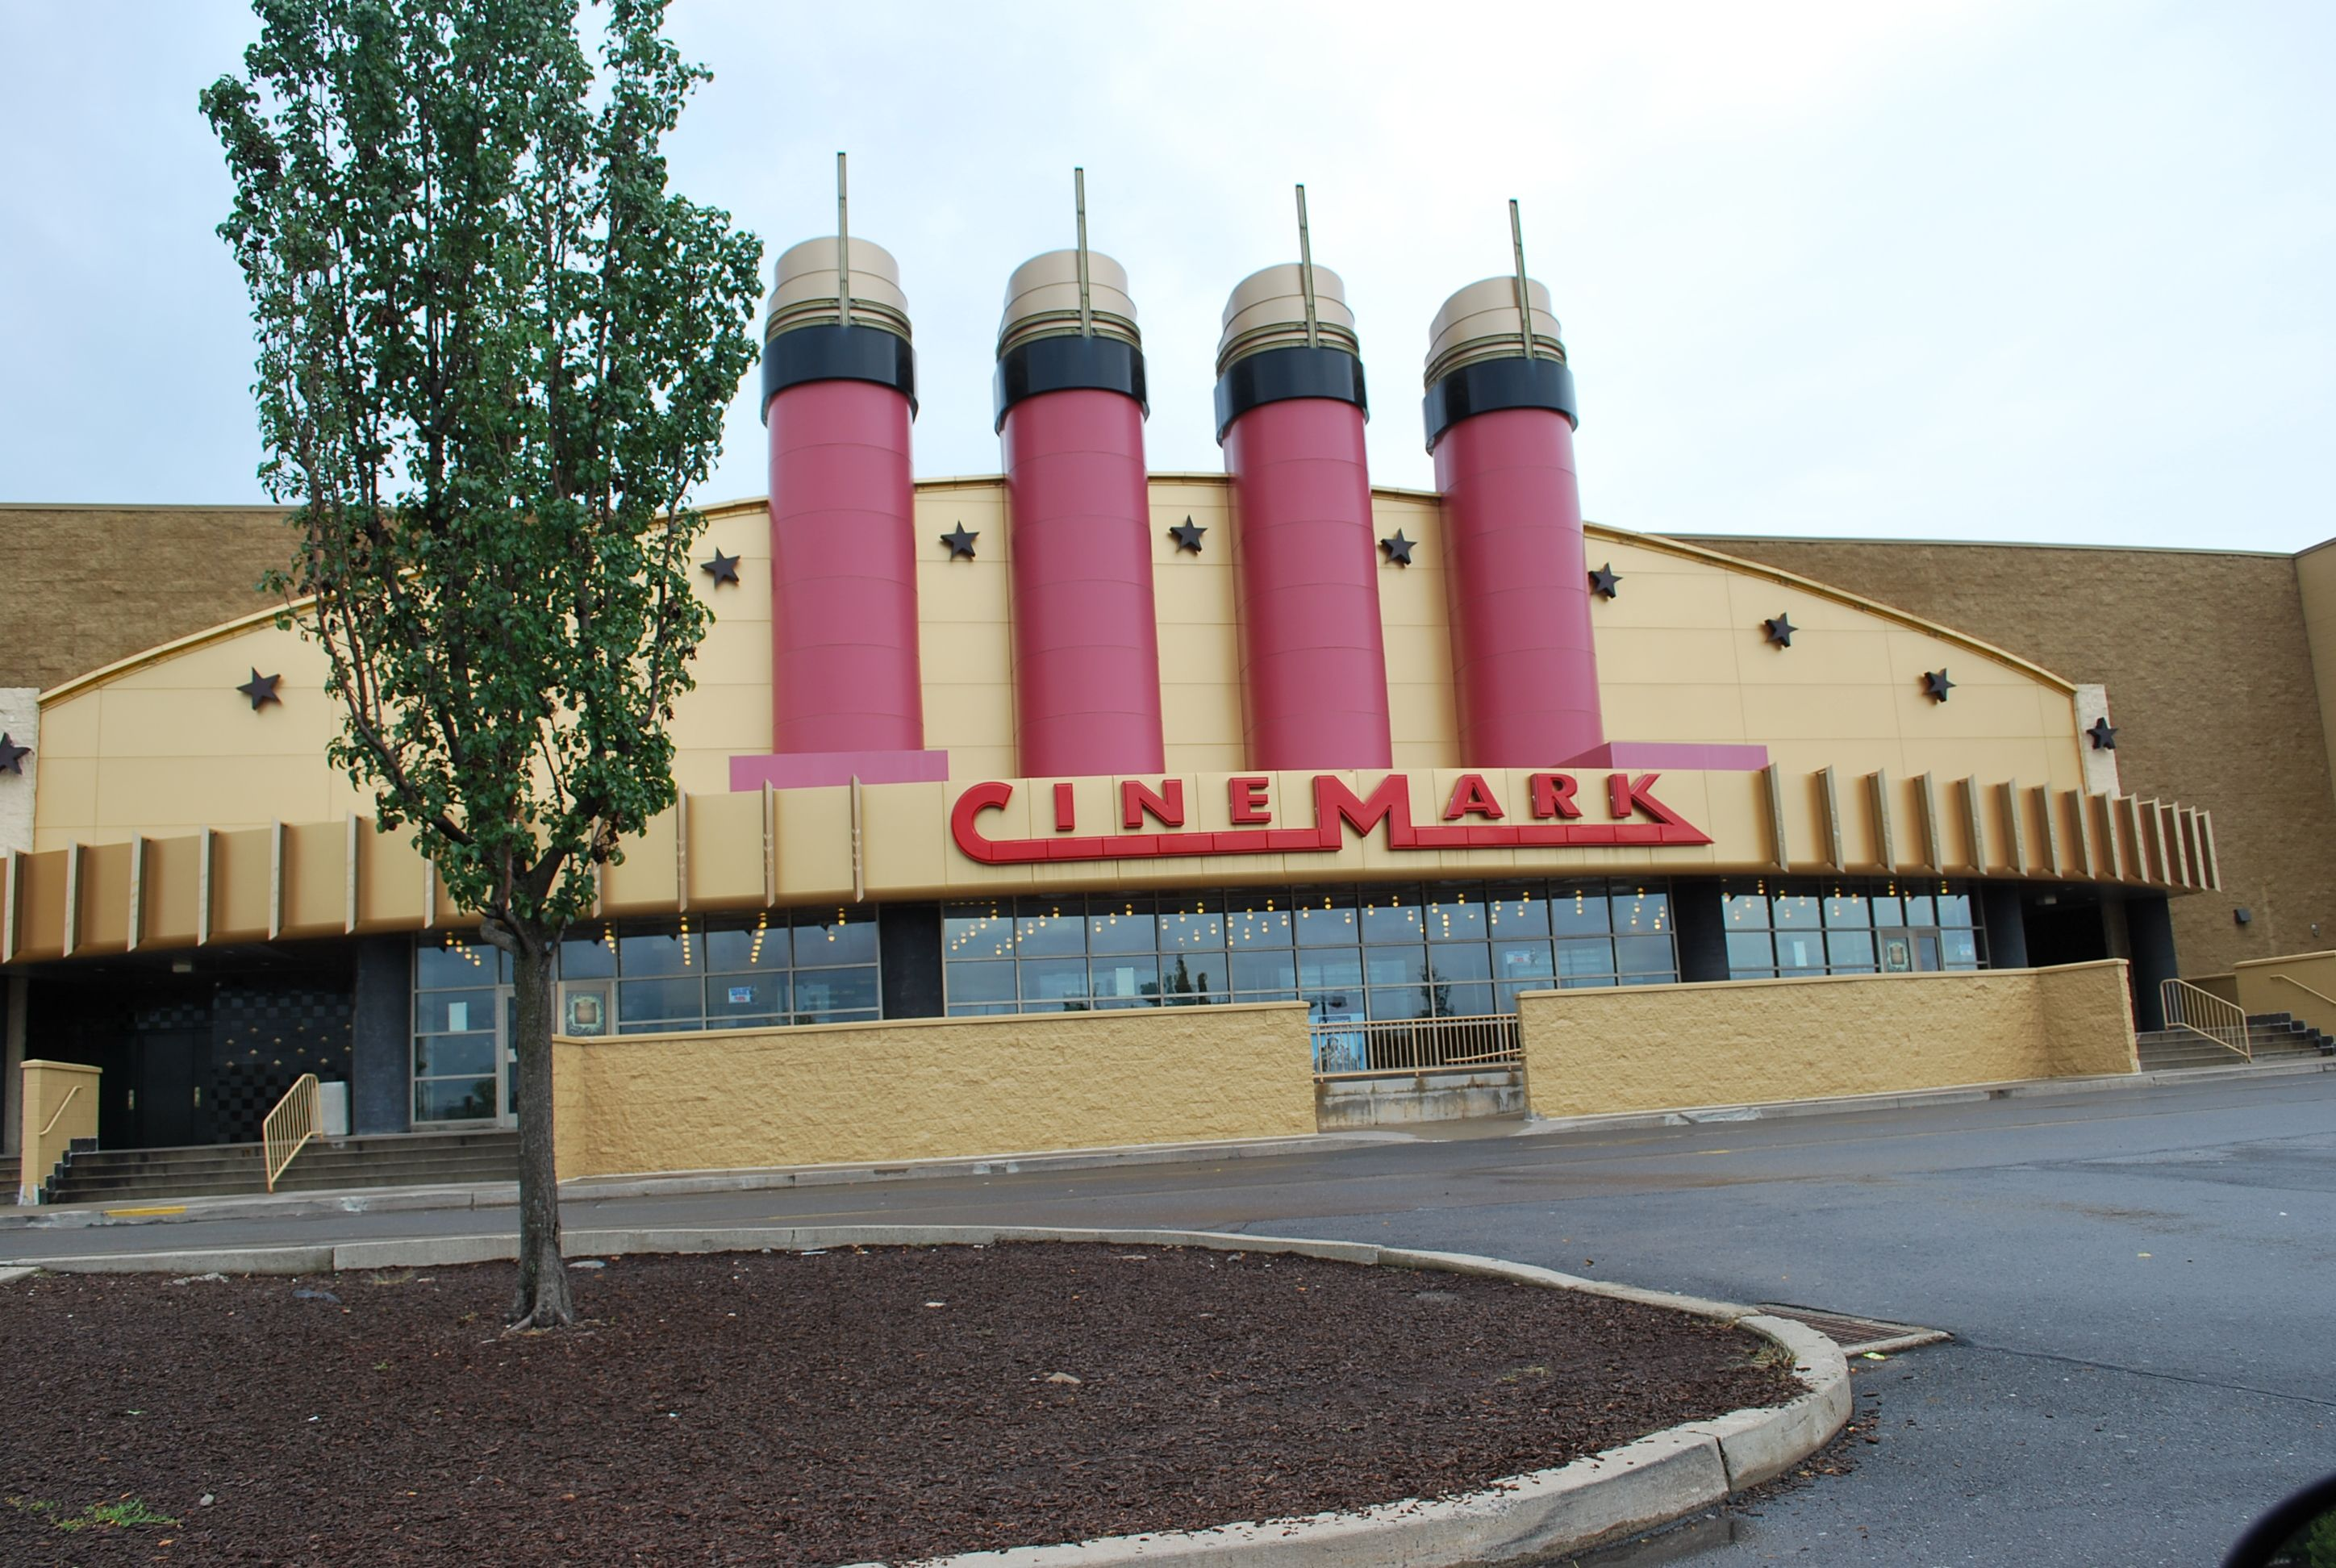 Cinemark in Moosic, PA Favorite places, Moosic, 50 states